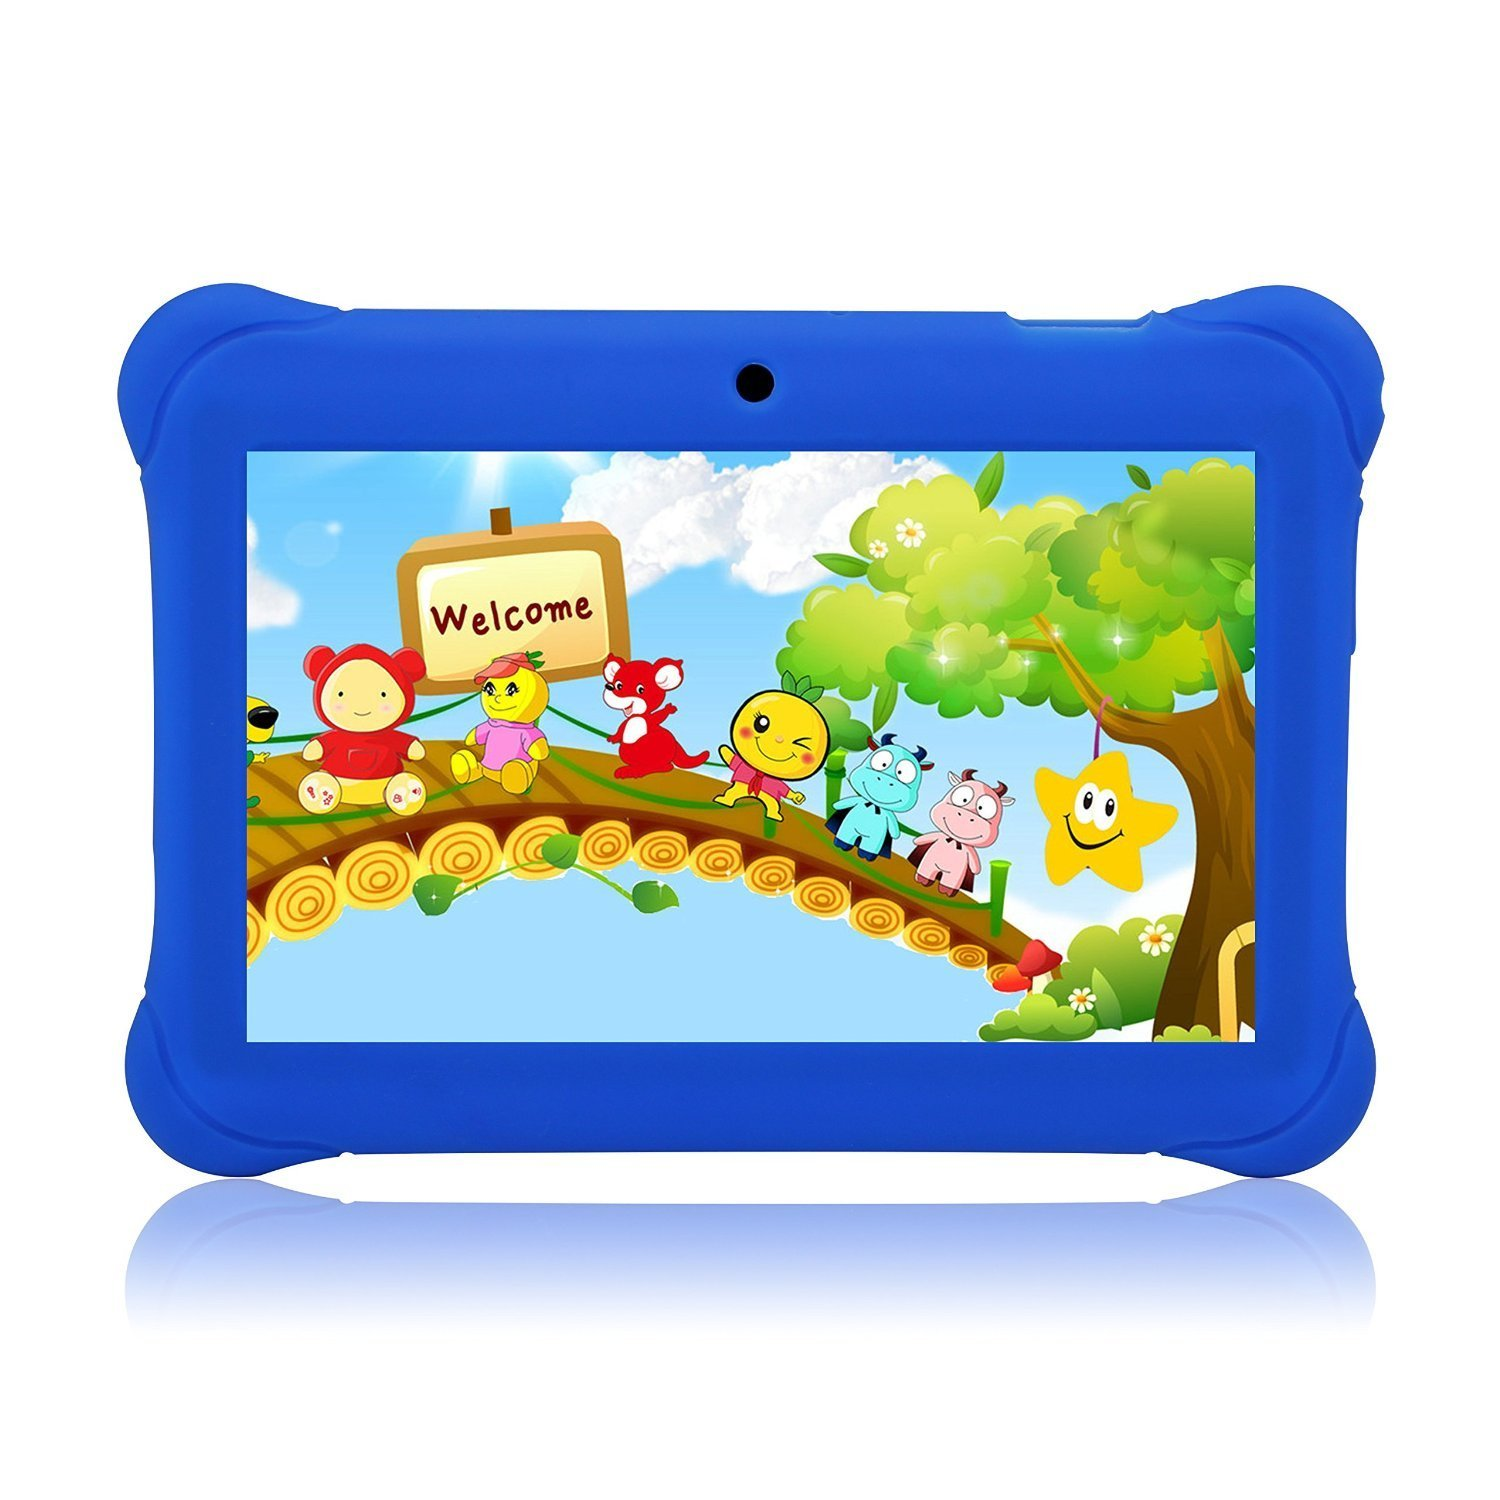 Tagital 7'' T7K Quad Core Android Kids Tablet, with Wifi and Camera and Games, HD Kids Edition with Kid Mode Pre-Installed (Blue) by Tagital